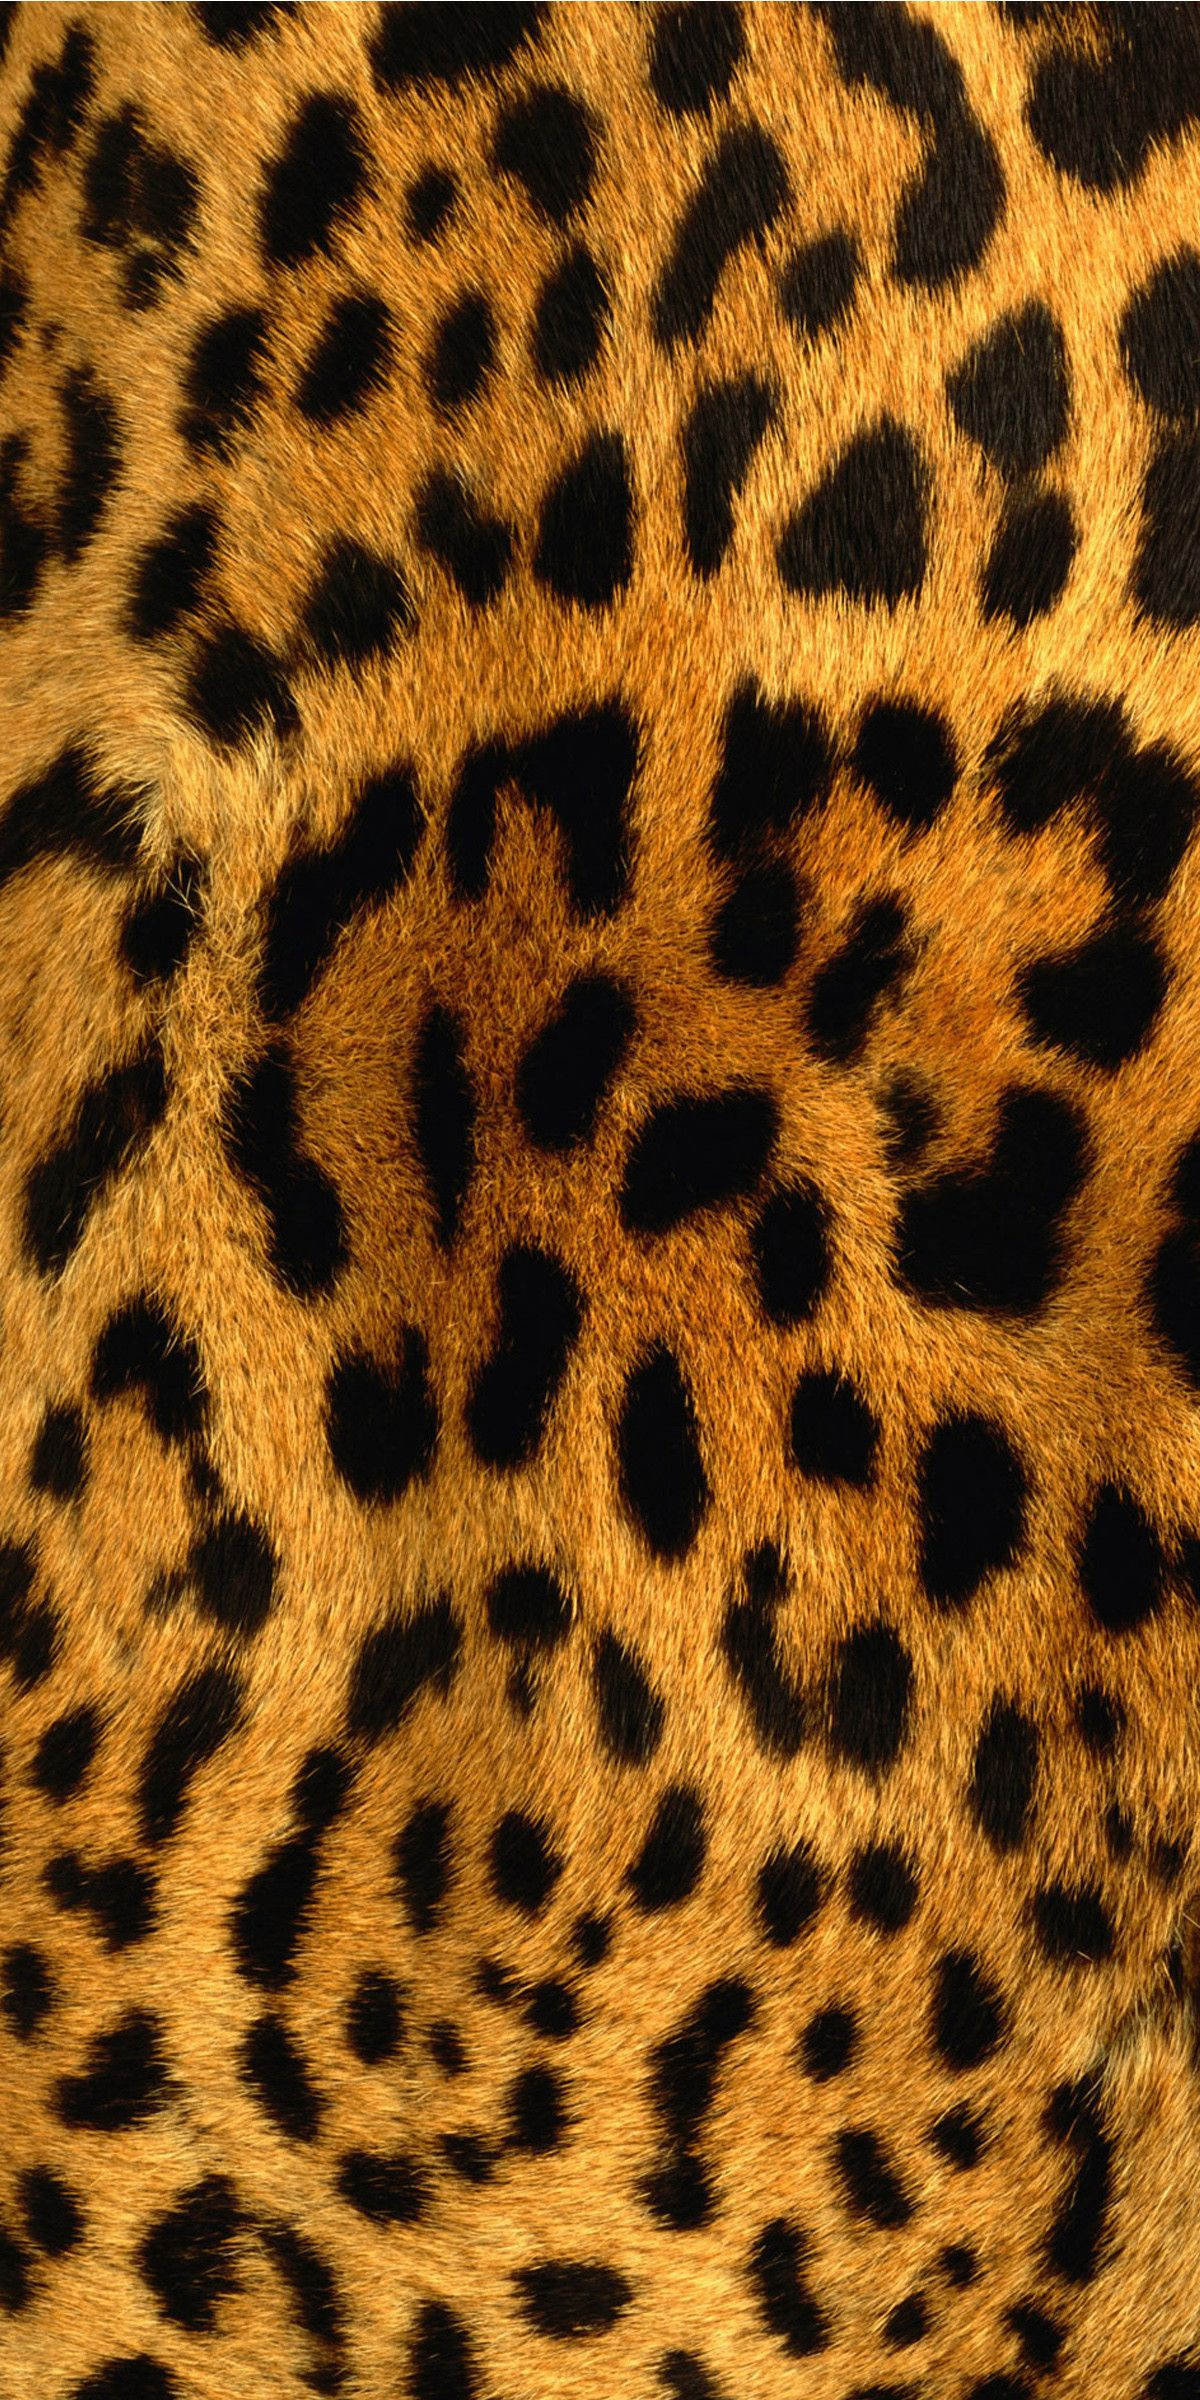 Leopard Coolwallpaper Cute Love Like Pattern Wallpaper Animals Cheetah Print Wallpaper Animal Print Wallpaper Iphone Prints